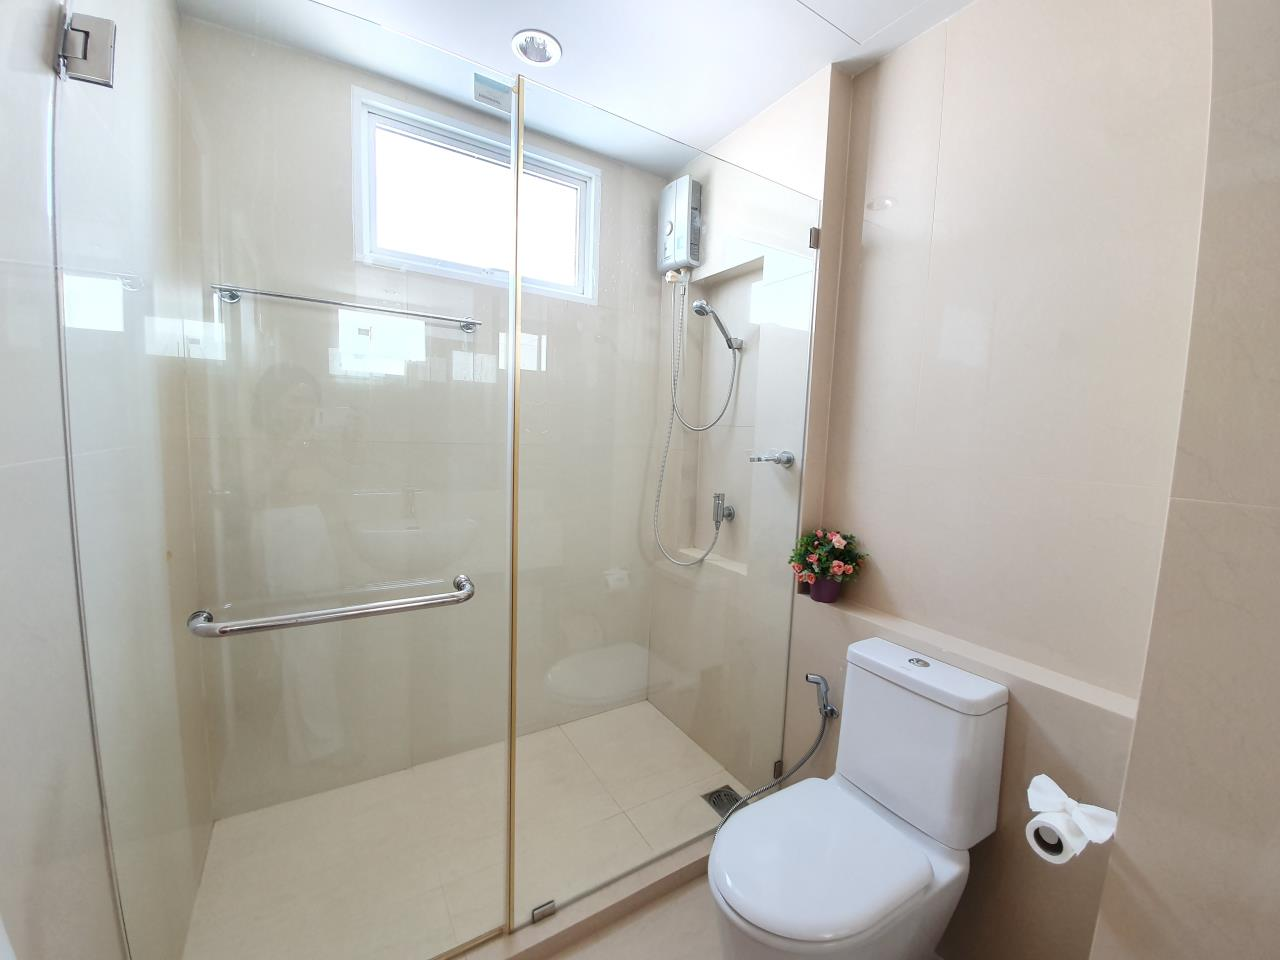 HOME - Real Estate Service Agency's The Breeze Hua Hin / 2 Beds (FOR RENT), เดอะ บรีซ หัวหิน / 2 ห้องนอน (ให้เช่า) T008 13